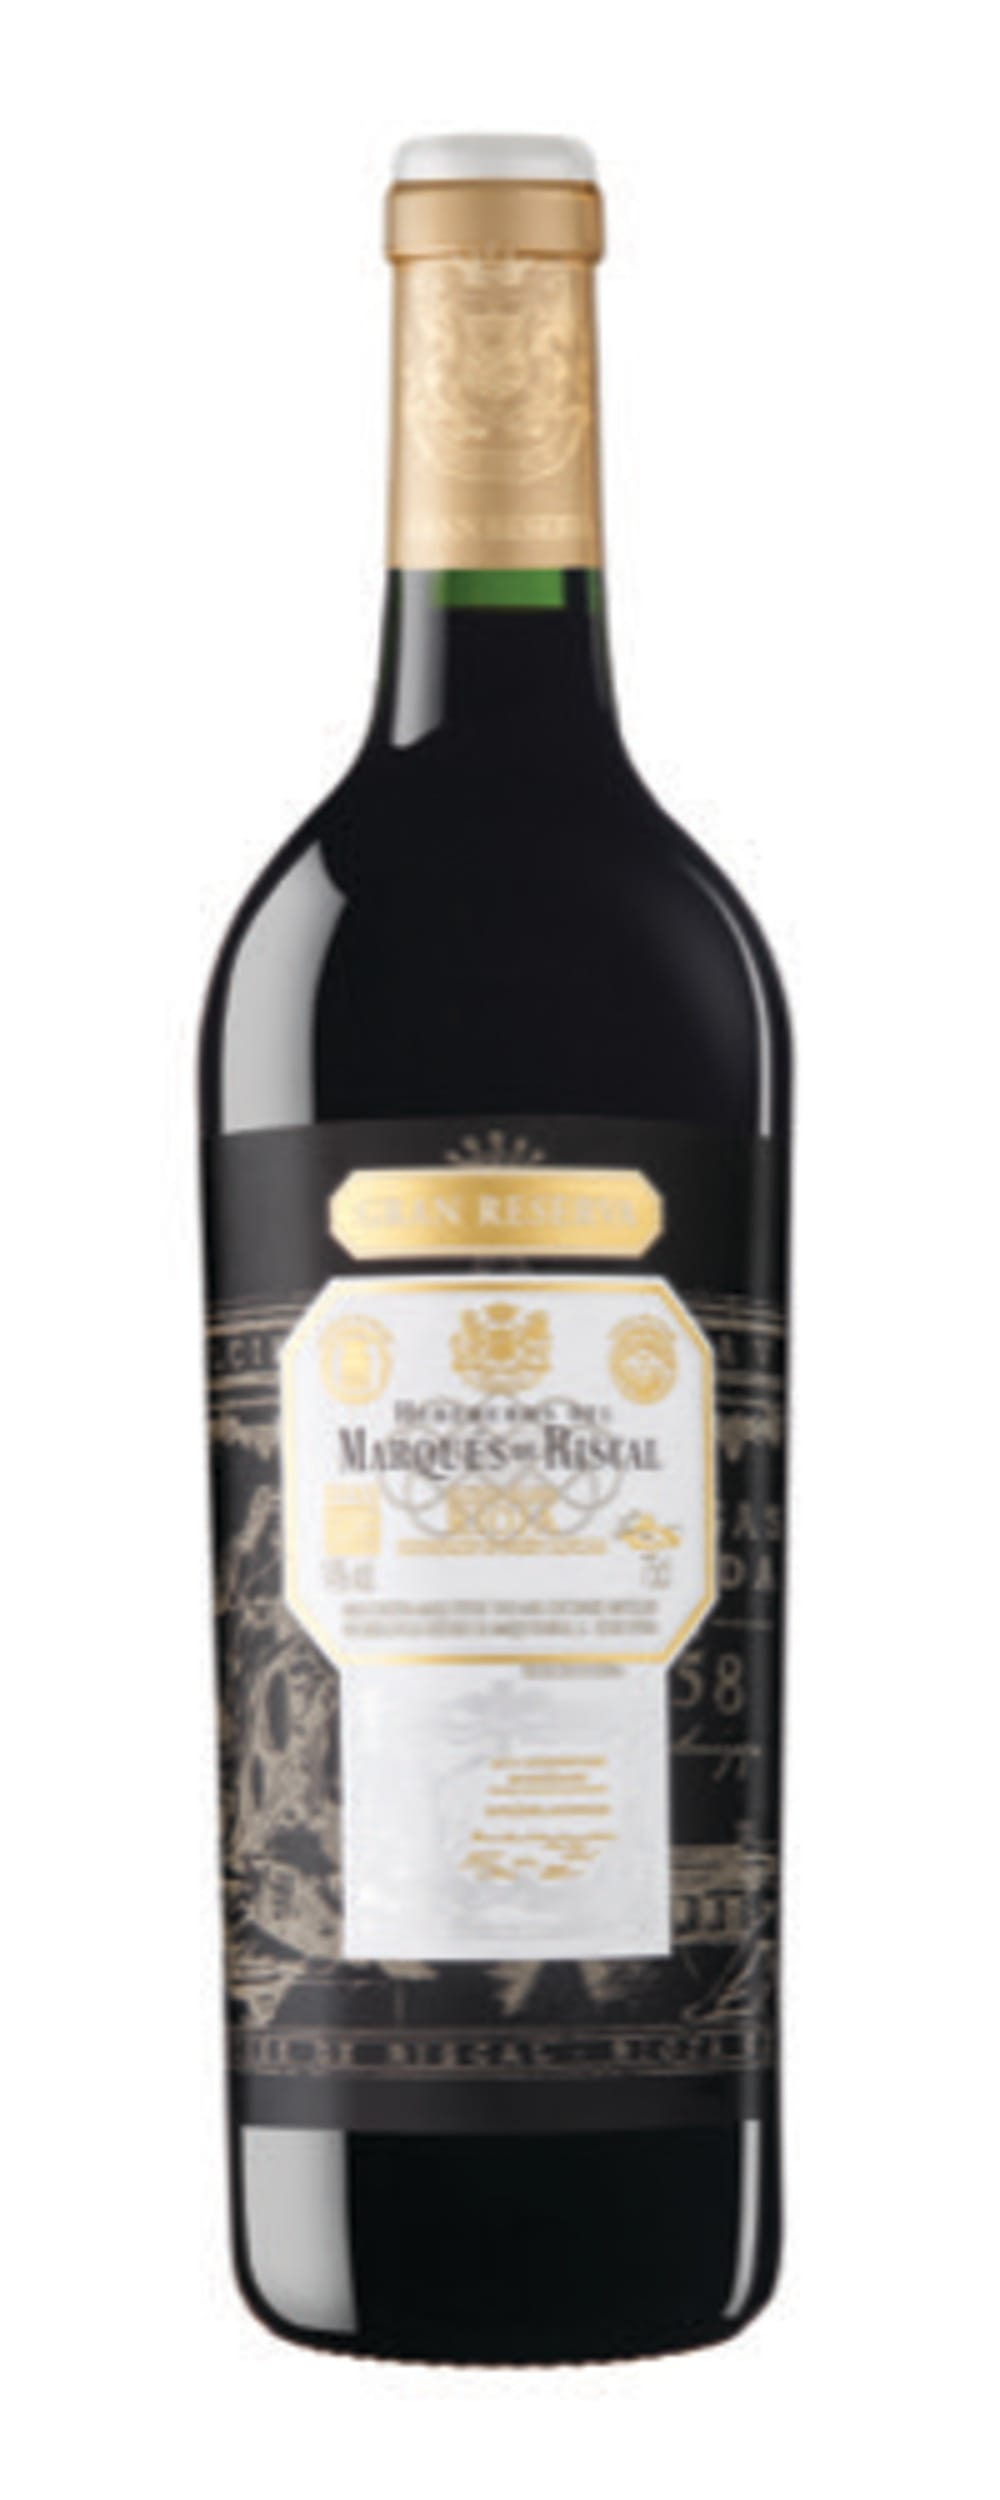 Bottle of Gran Reserva